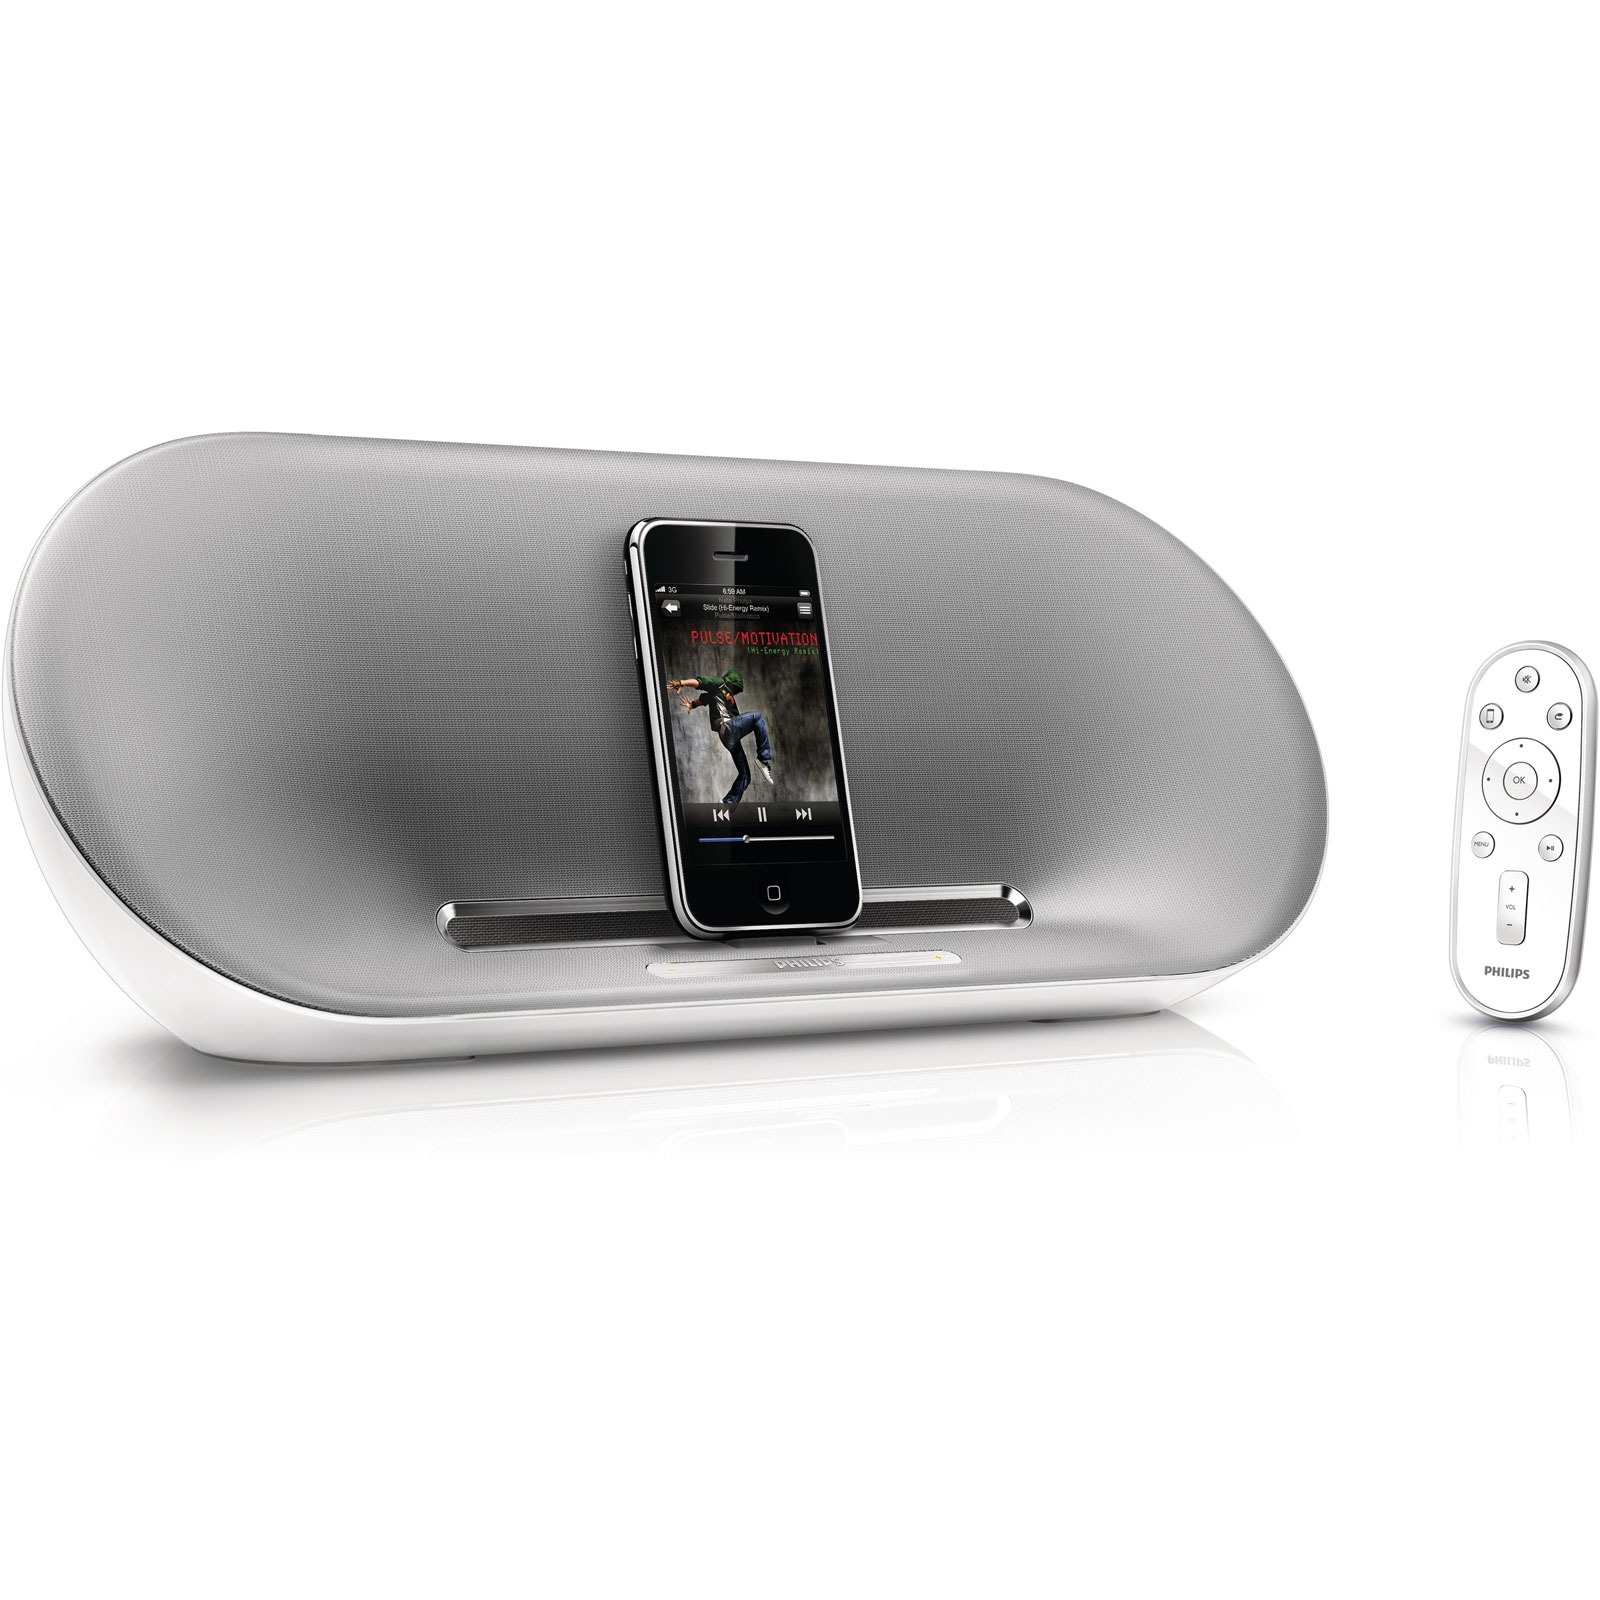 Dock & Enceinte Bluetooth Philips DS8500 Philips DS8500 - Station d'accueil pour iPod/iPhone